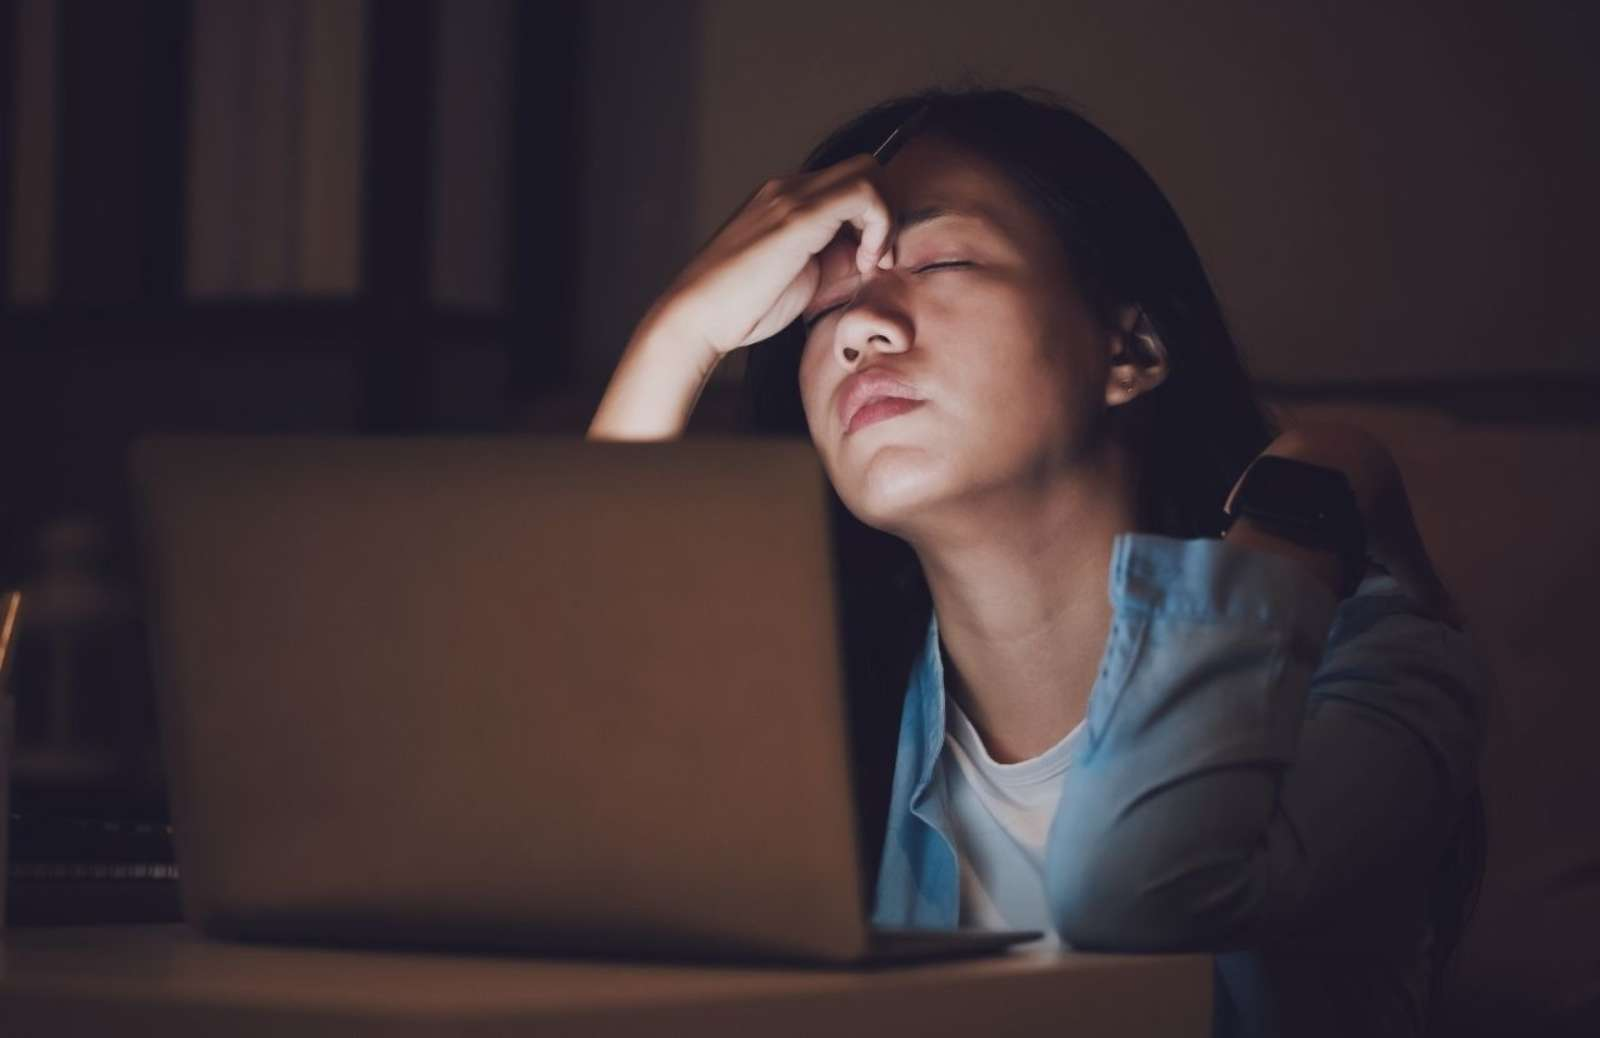 Tired woman rubbing her forhead while sitting in front of laptop